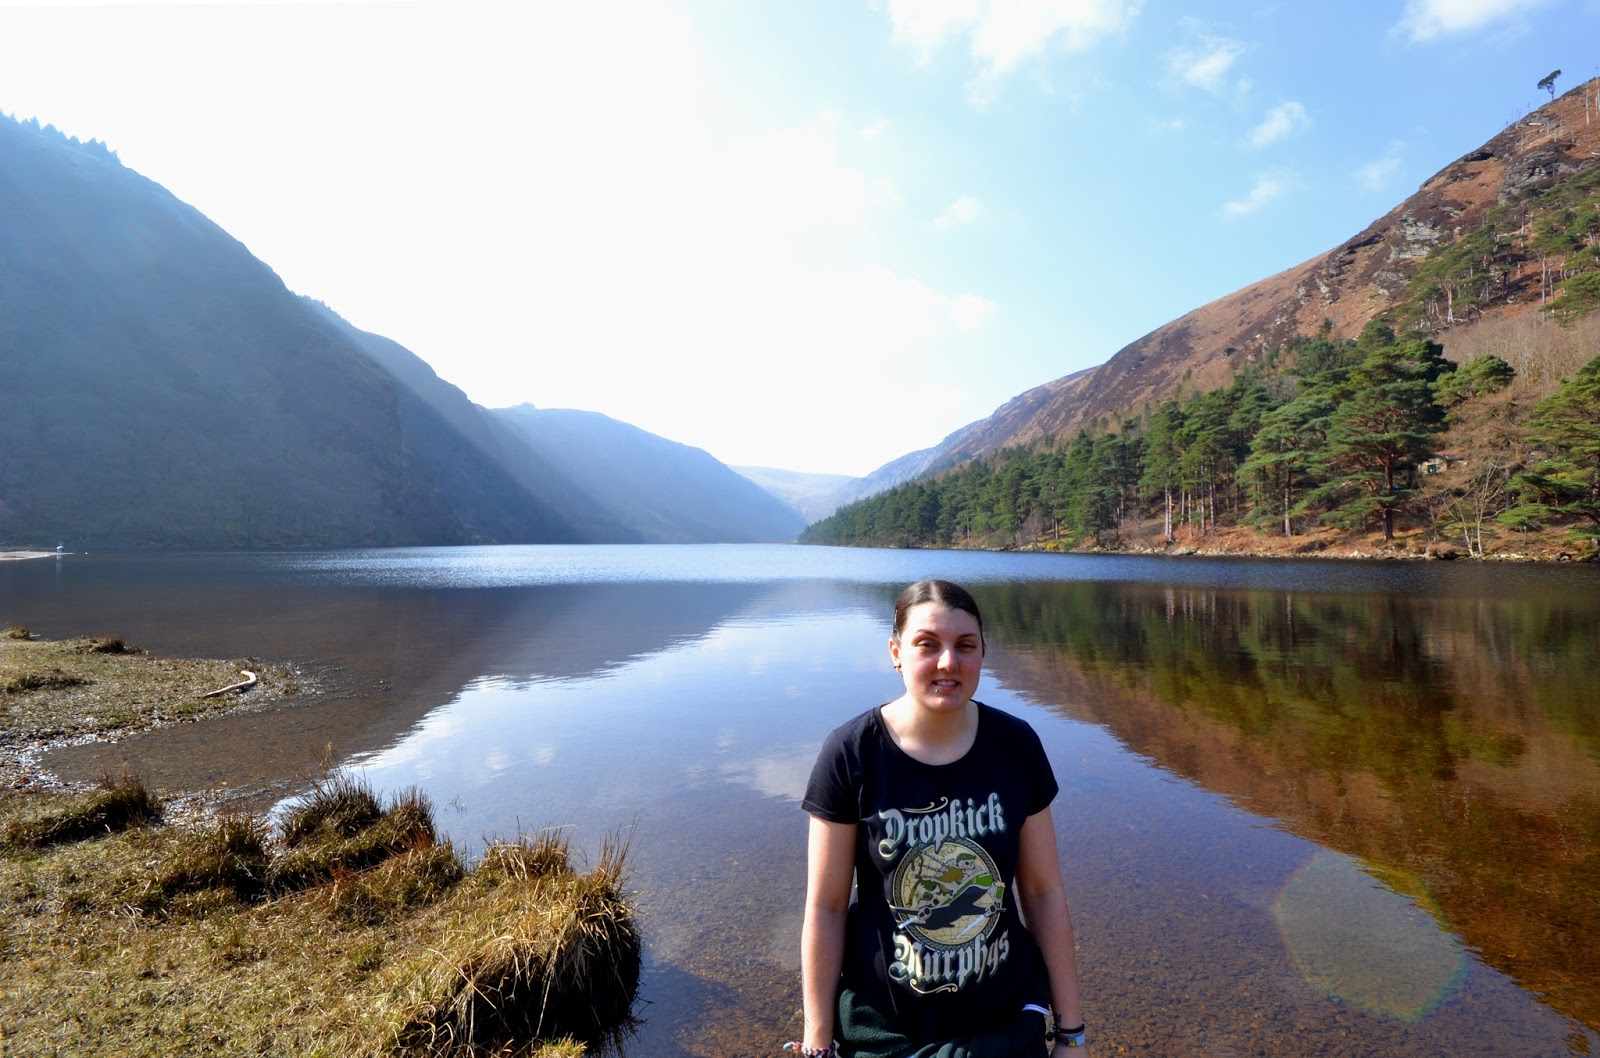 Wicklow mountains, Lough Tay, Guinness lake, tours, explore, Ireland, Dublin countryside, trip from Dublin, Glendalough,